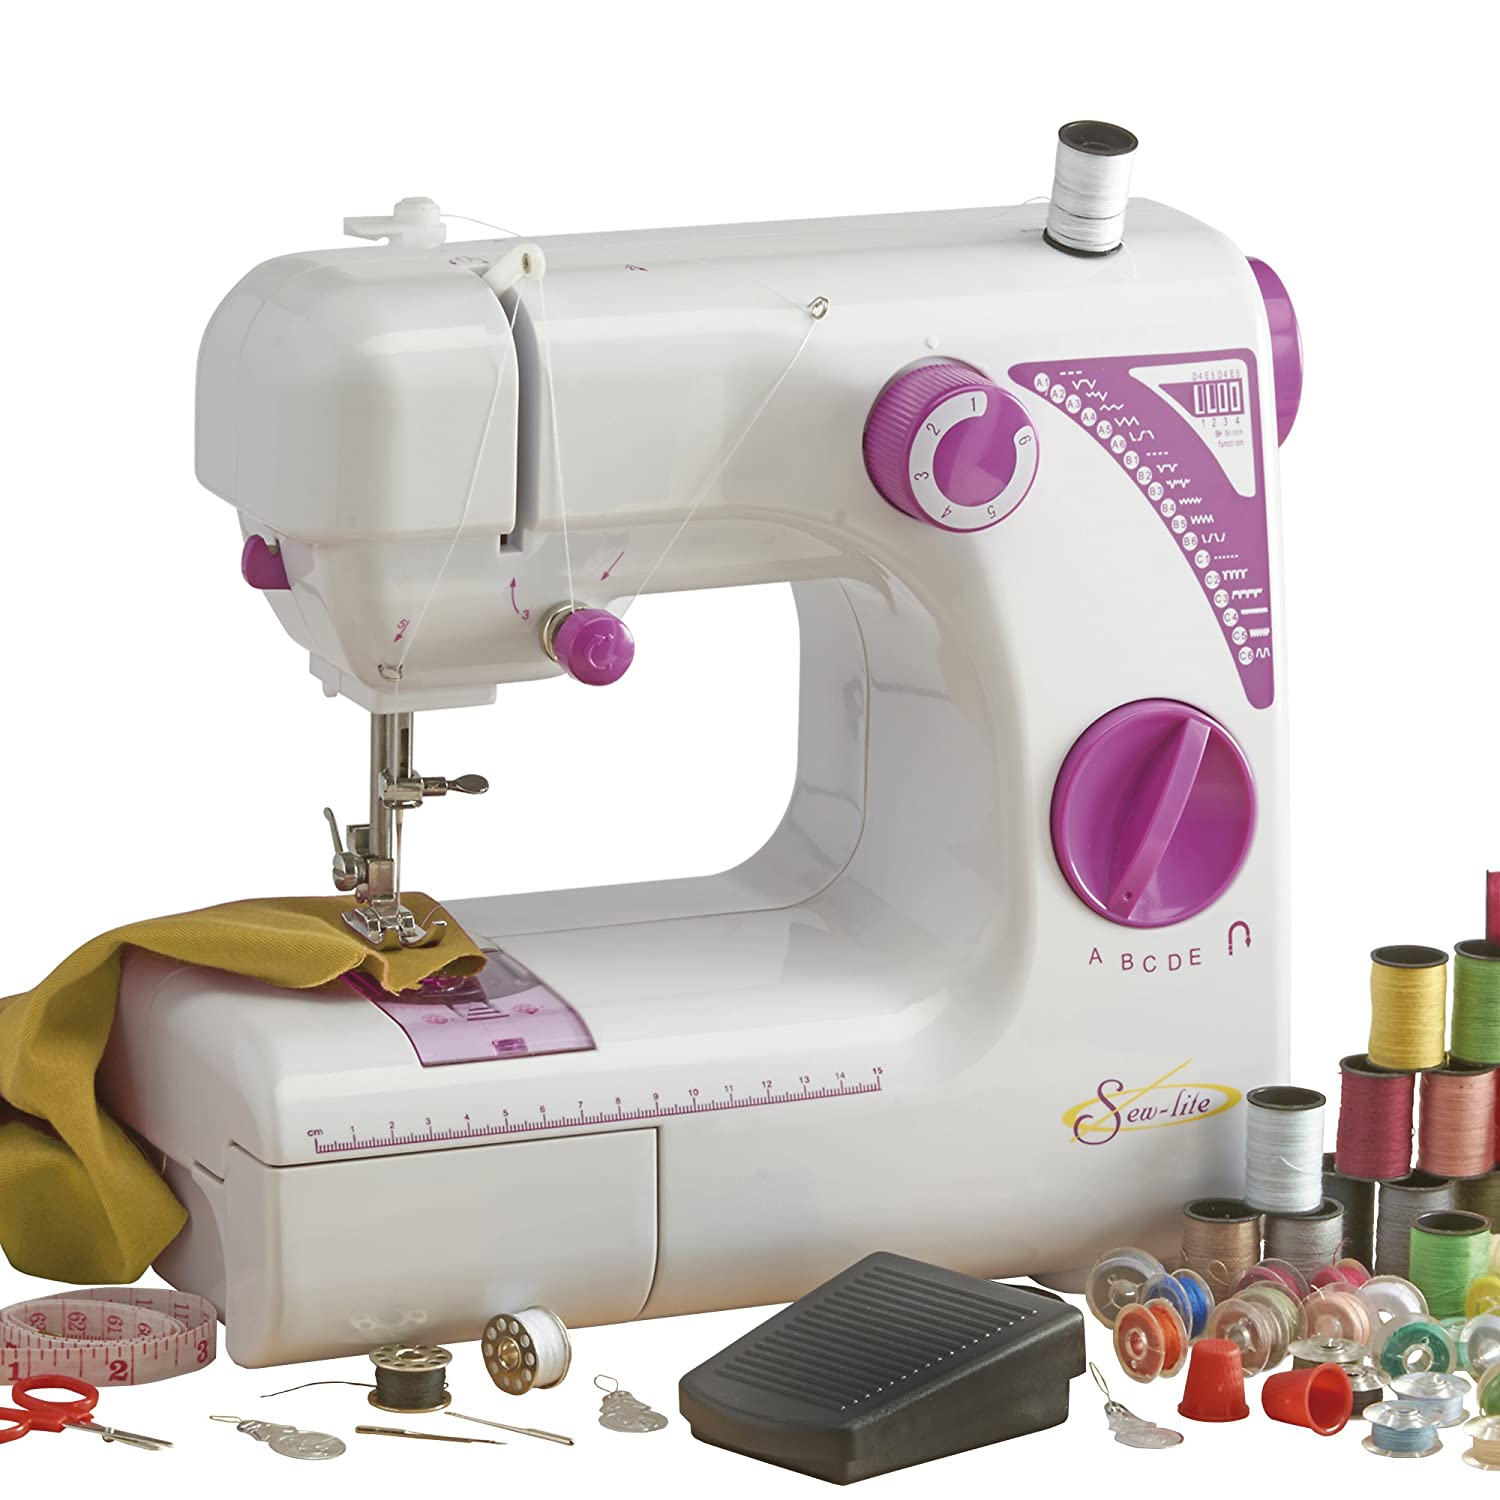 Sew Lite Portable Sewing Machine Adjustable Speed Automatic